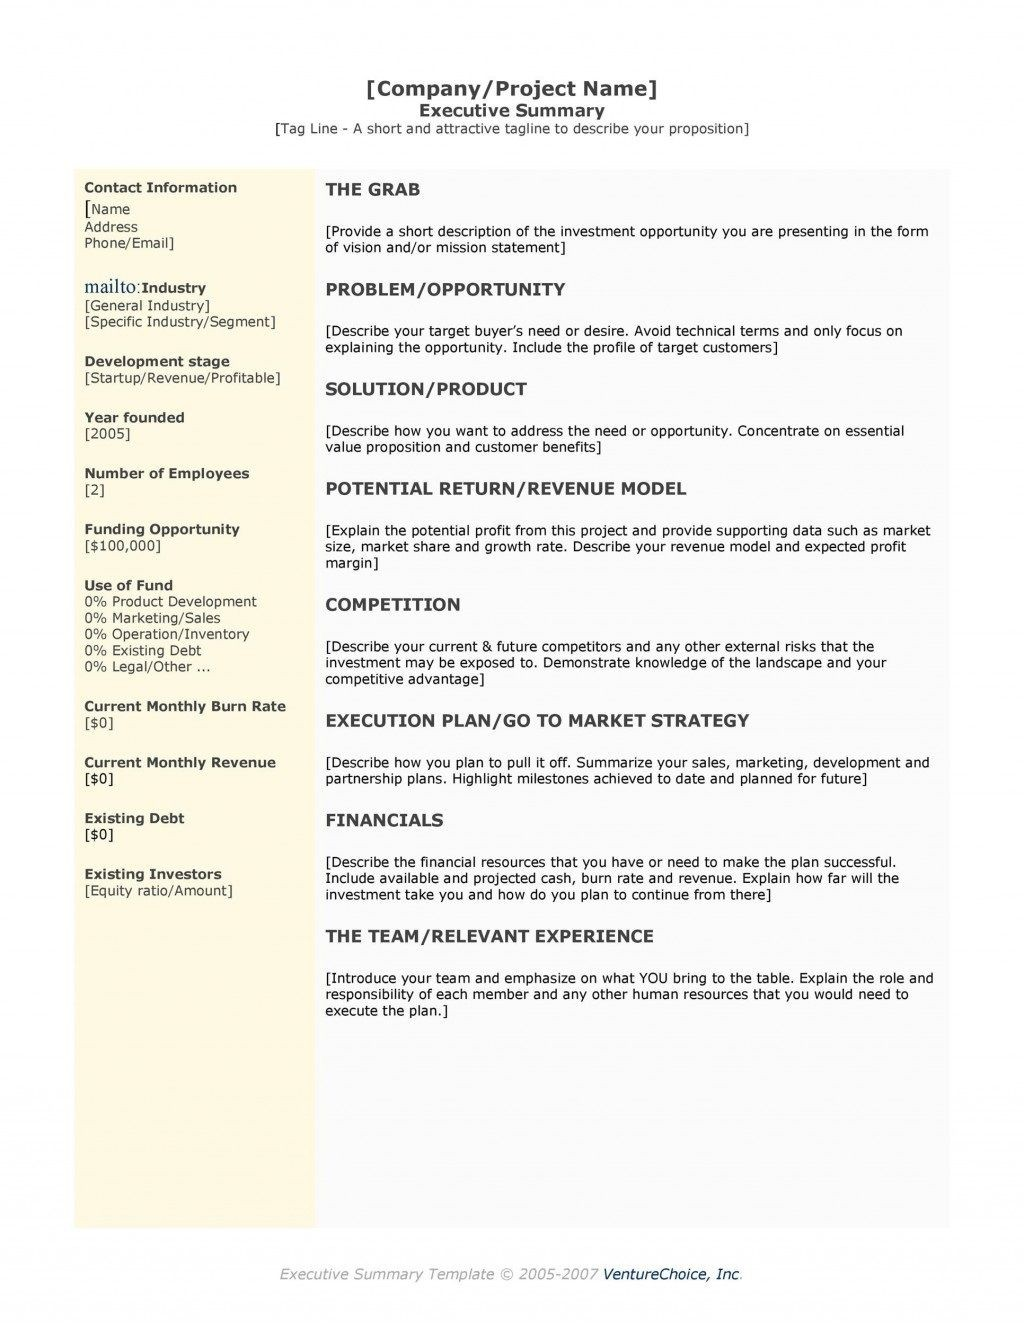 009 Staggering Busines Plan Executive Summary Template Word Design Large